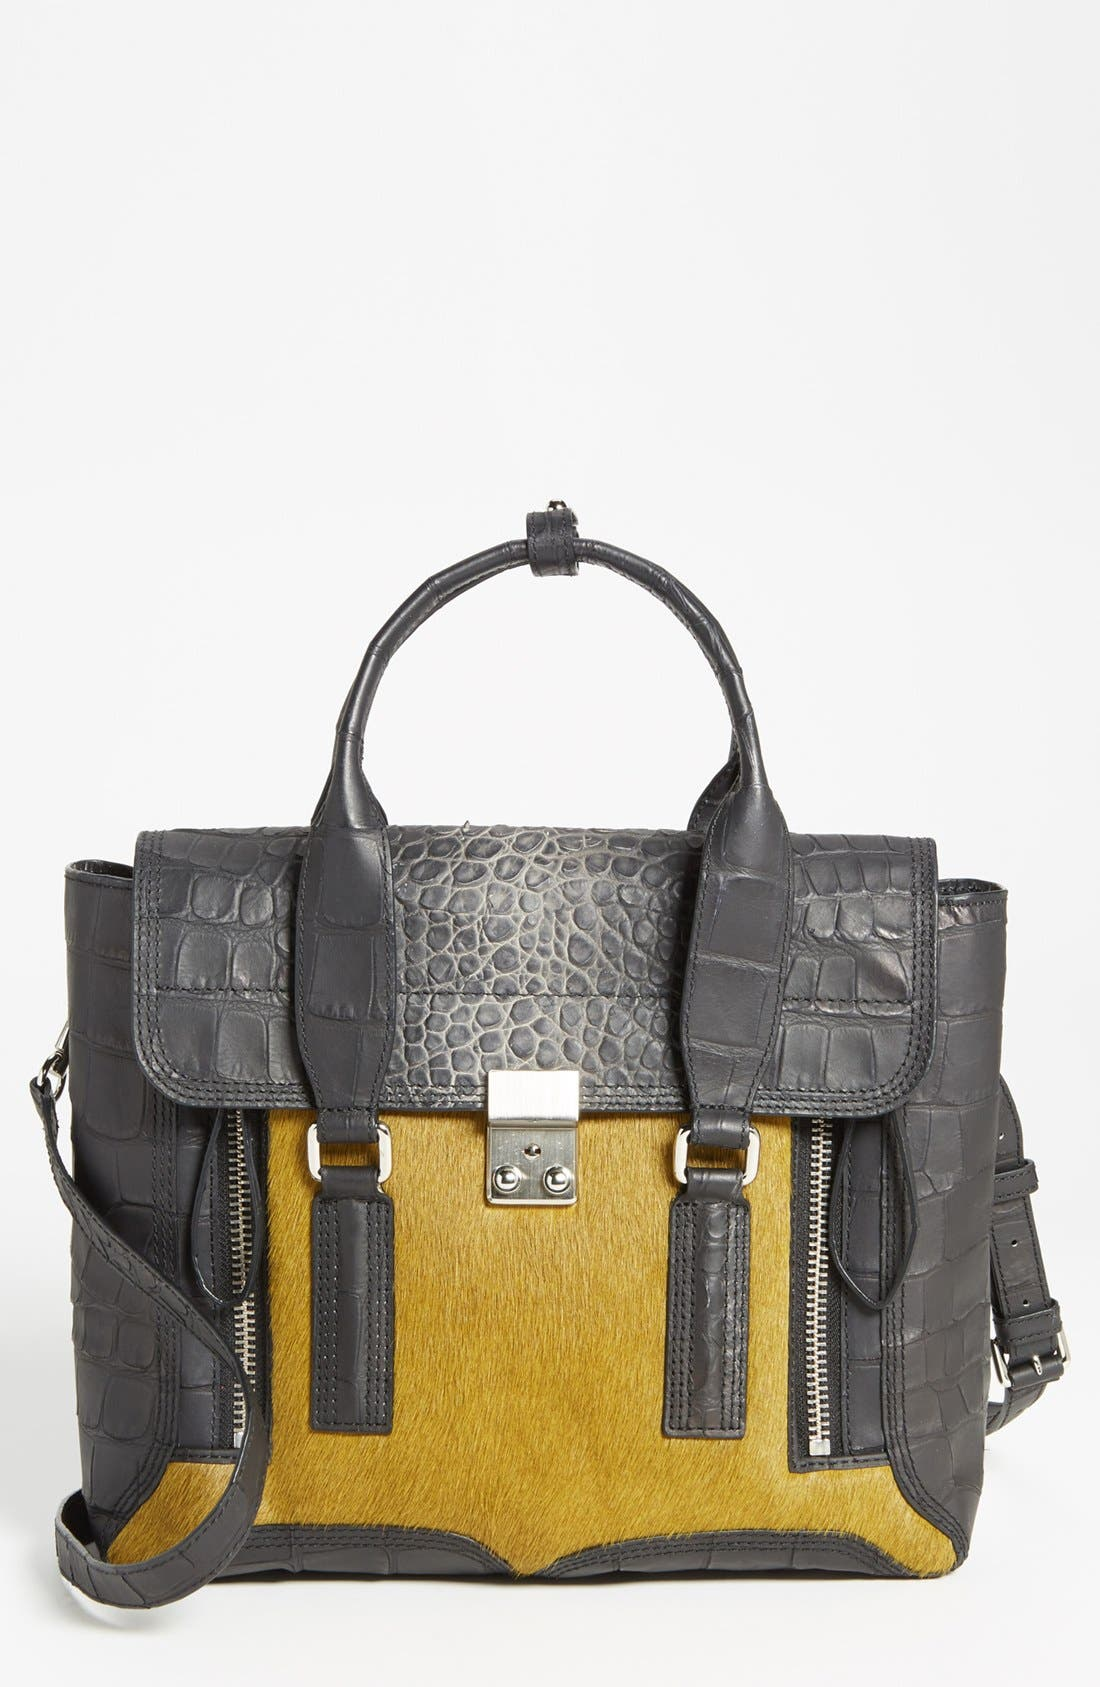 Alternate Image 1 Selected - 3.1 Phillip Lim 'Pashli - Medium' Calf Hair & Leather Satchel